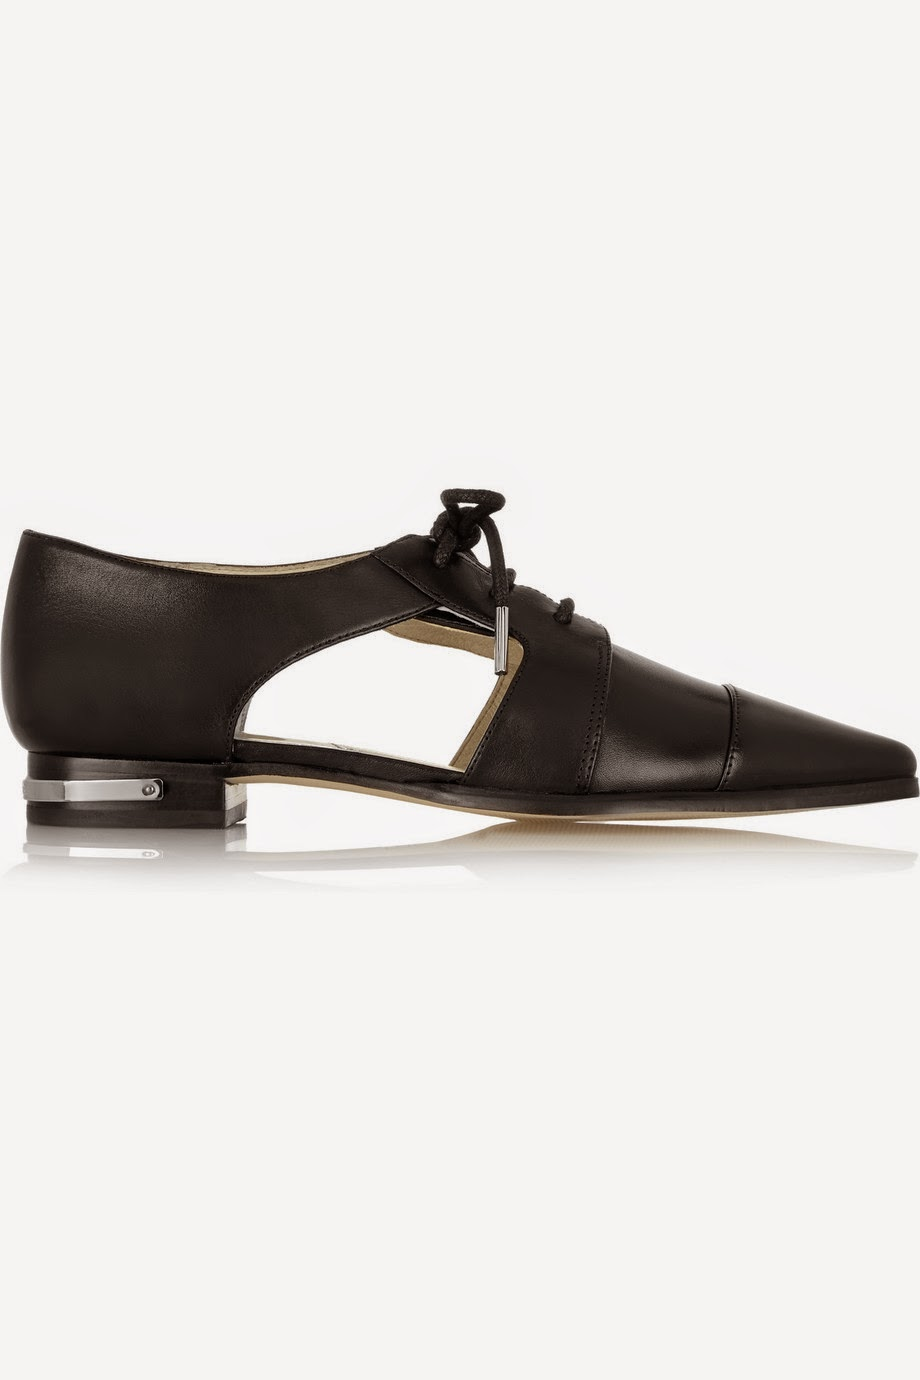 michael hors black pointed flats, michael hors tie flats, michael kors graham, black cutout shoes,